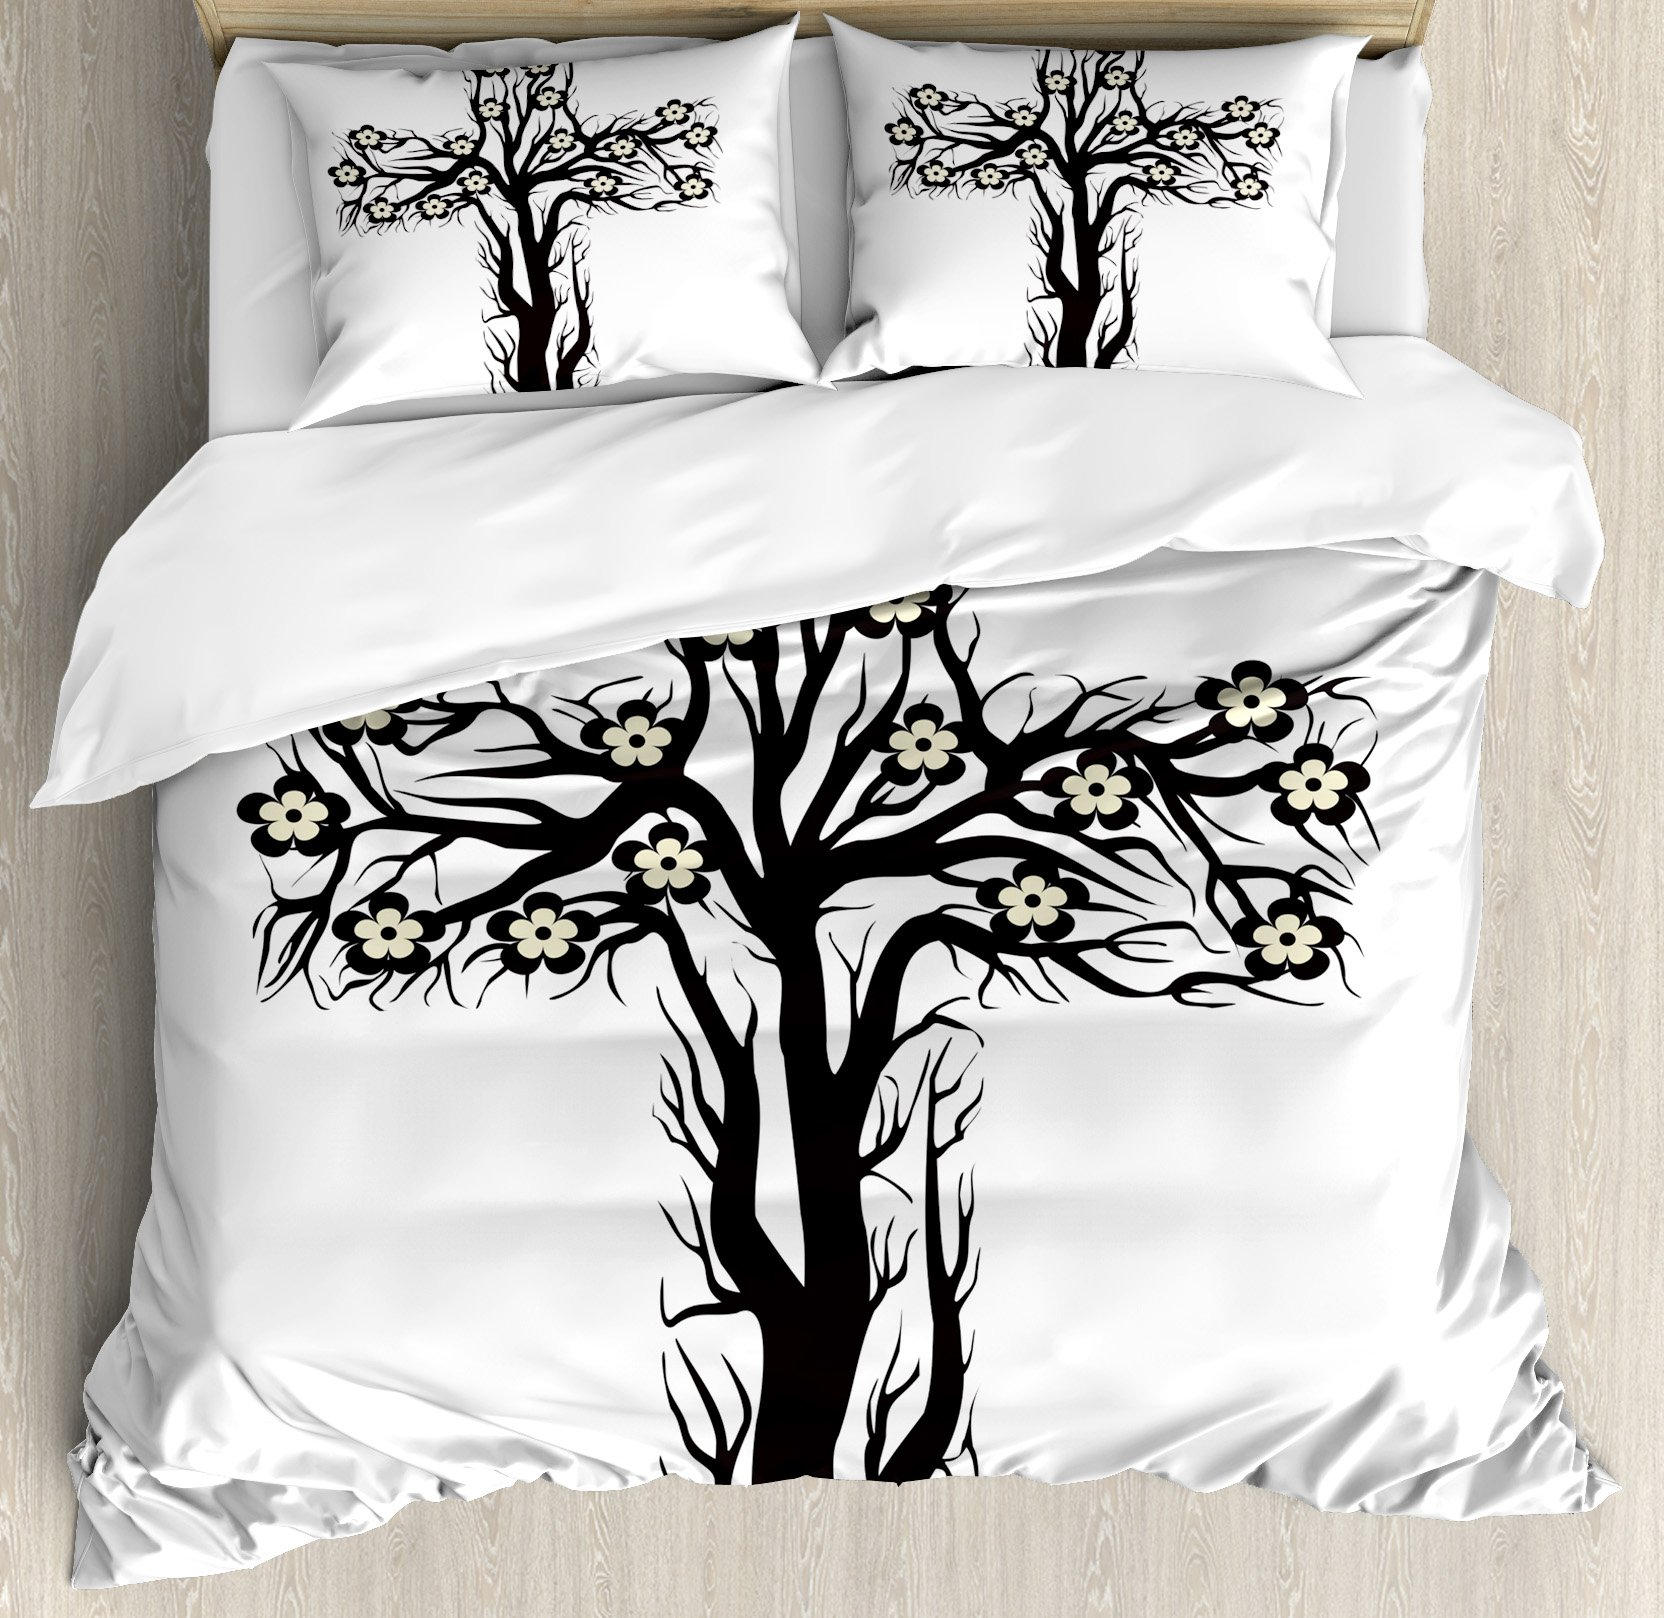 Baptism Duvet Cover Set by Ambesonne, Floral Christian Cross in Tree Shape Christ Religion Prayer Blessed Miracle Symbol, 3 Piece Bedding Set with Pillow Shams, Queen / Full, Black Cream